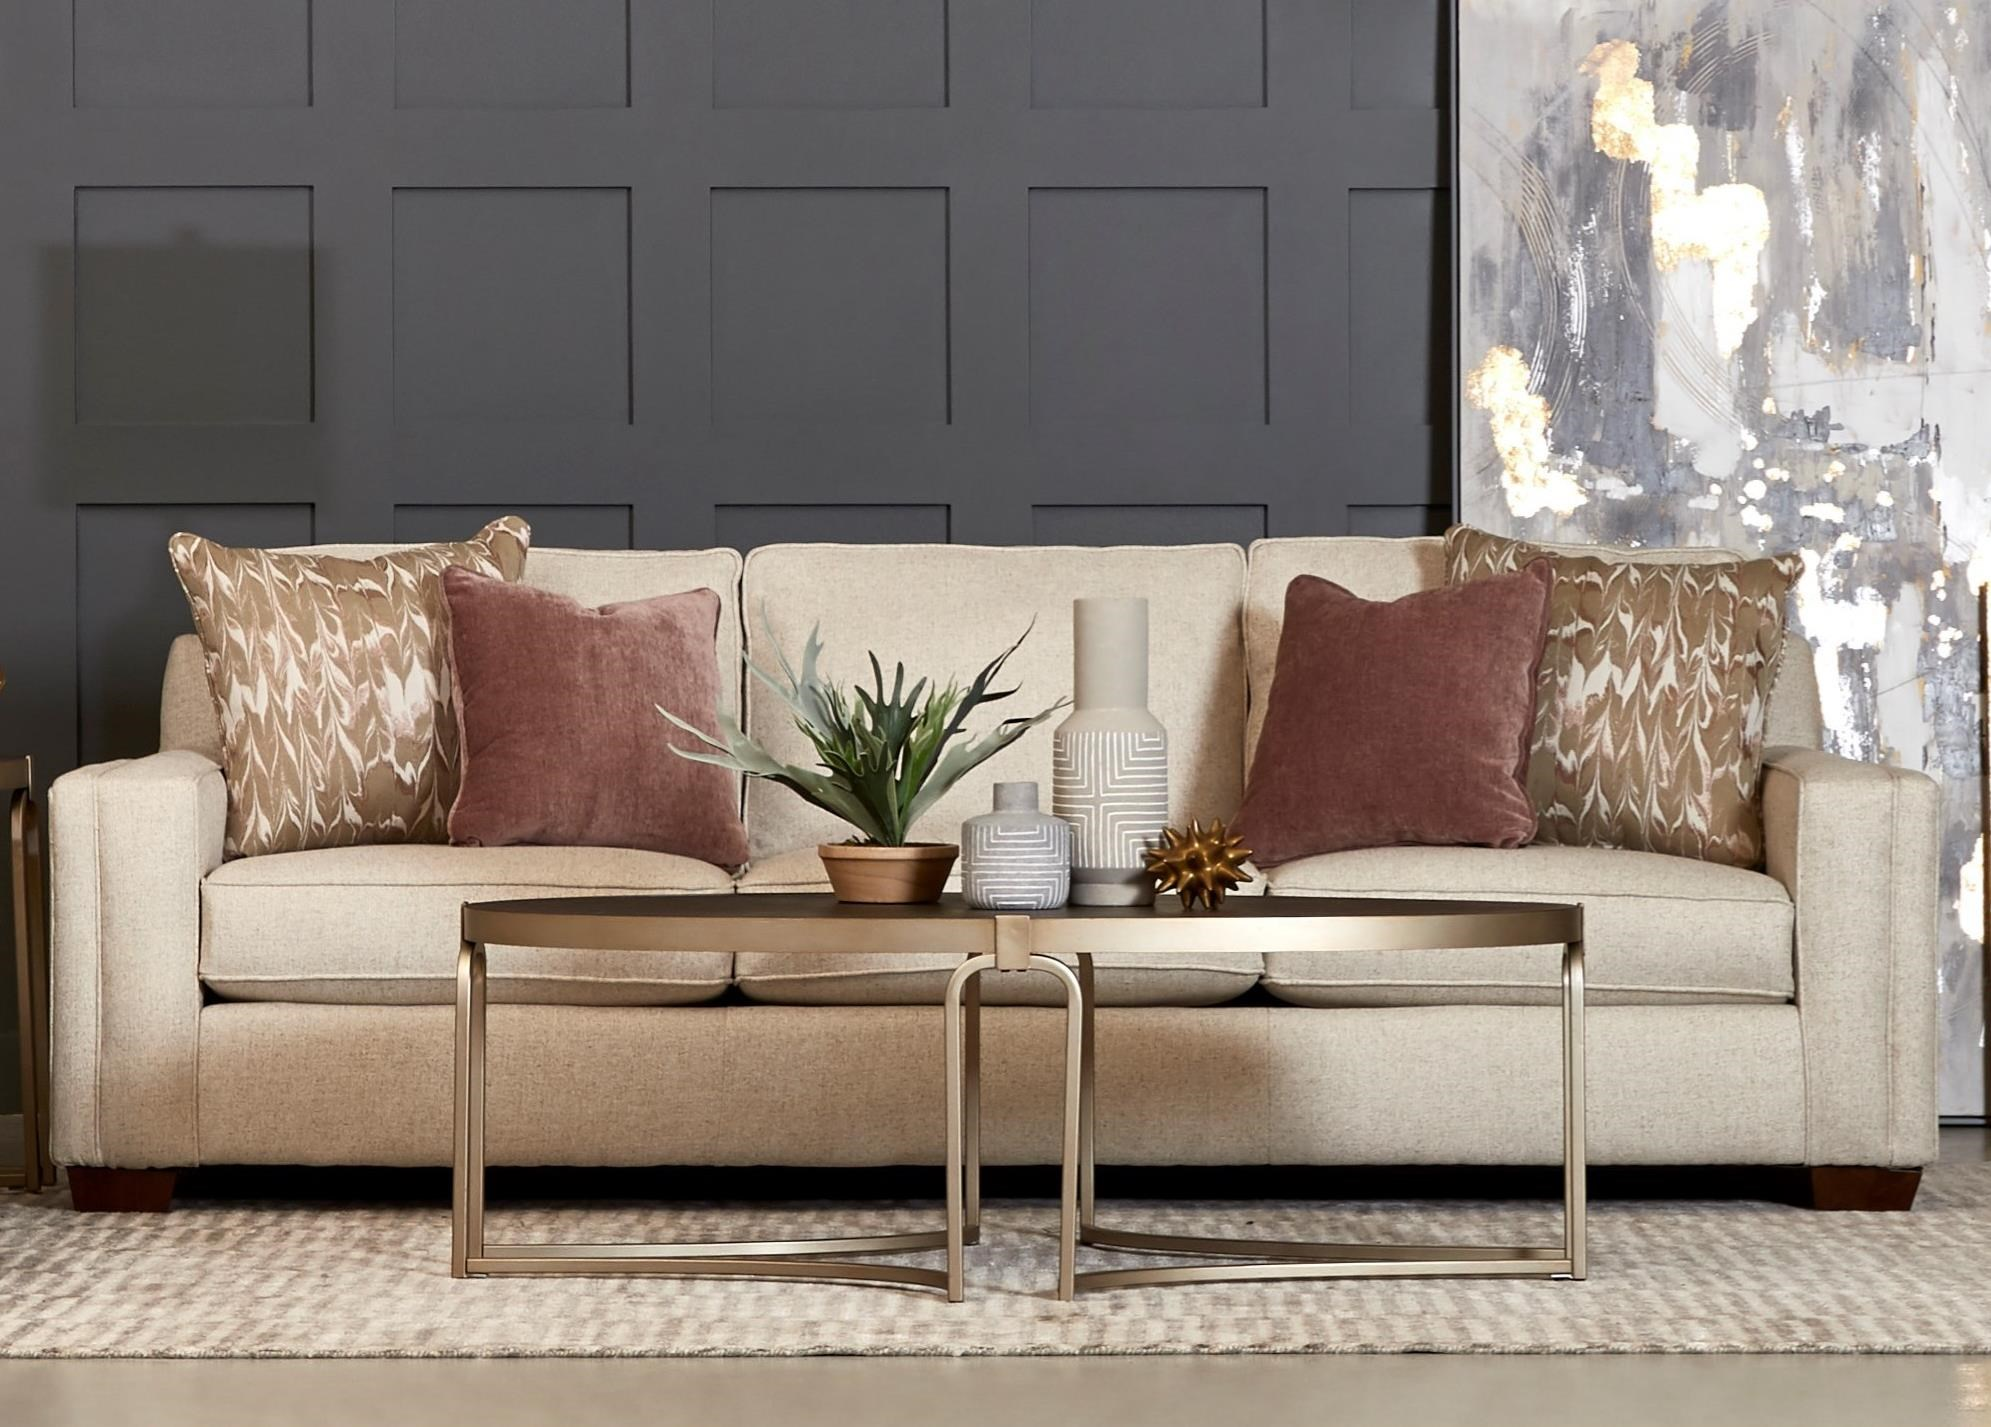 Boden Extra Large Sofa with Kool Gel Cushions by Klaussner at Northeast Factory Direct